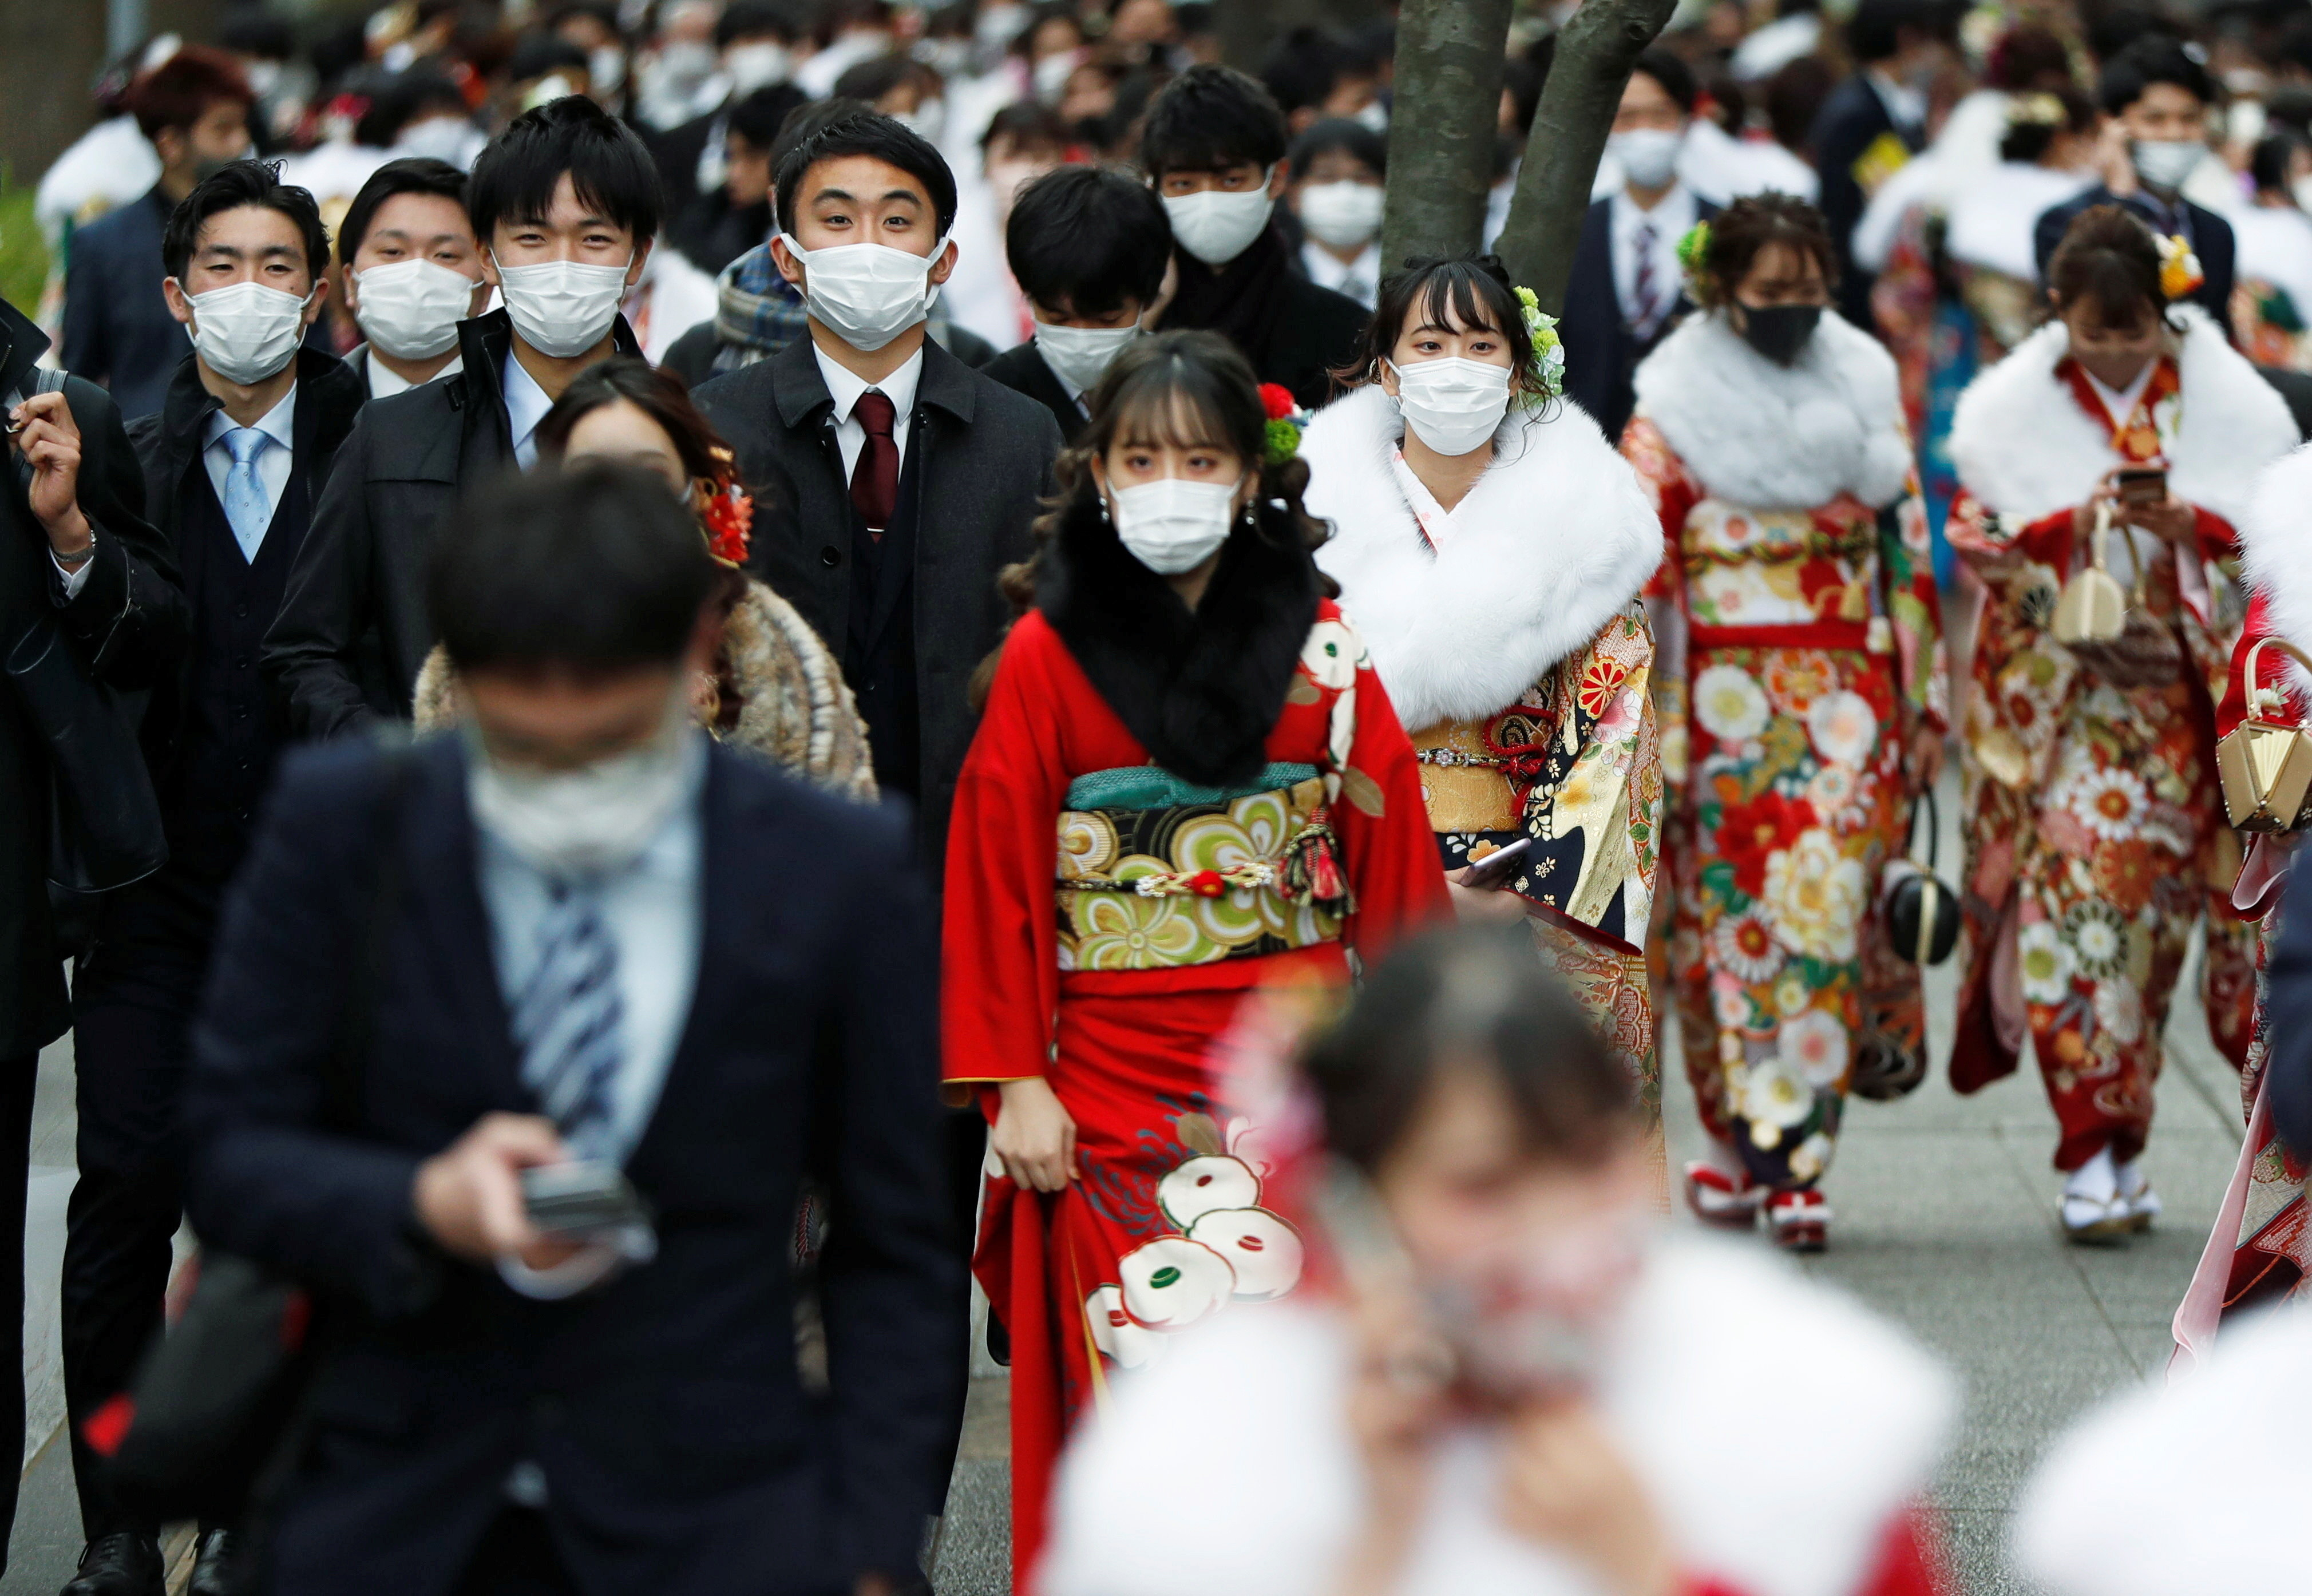 Youth attend their Coming of Age Day celebration ceremony in Yokohama, Japan, on 11 January 2021.